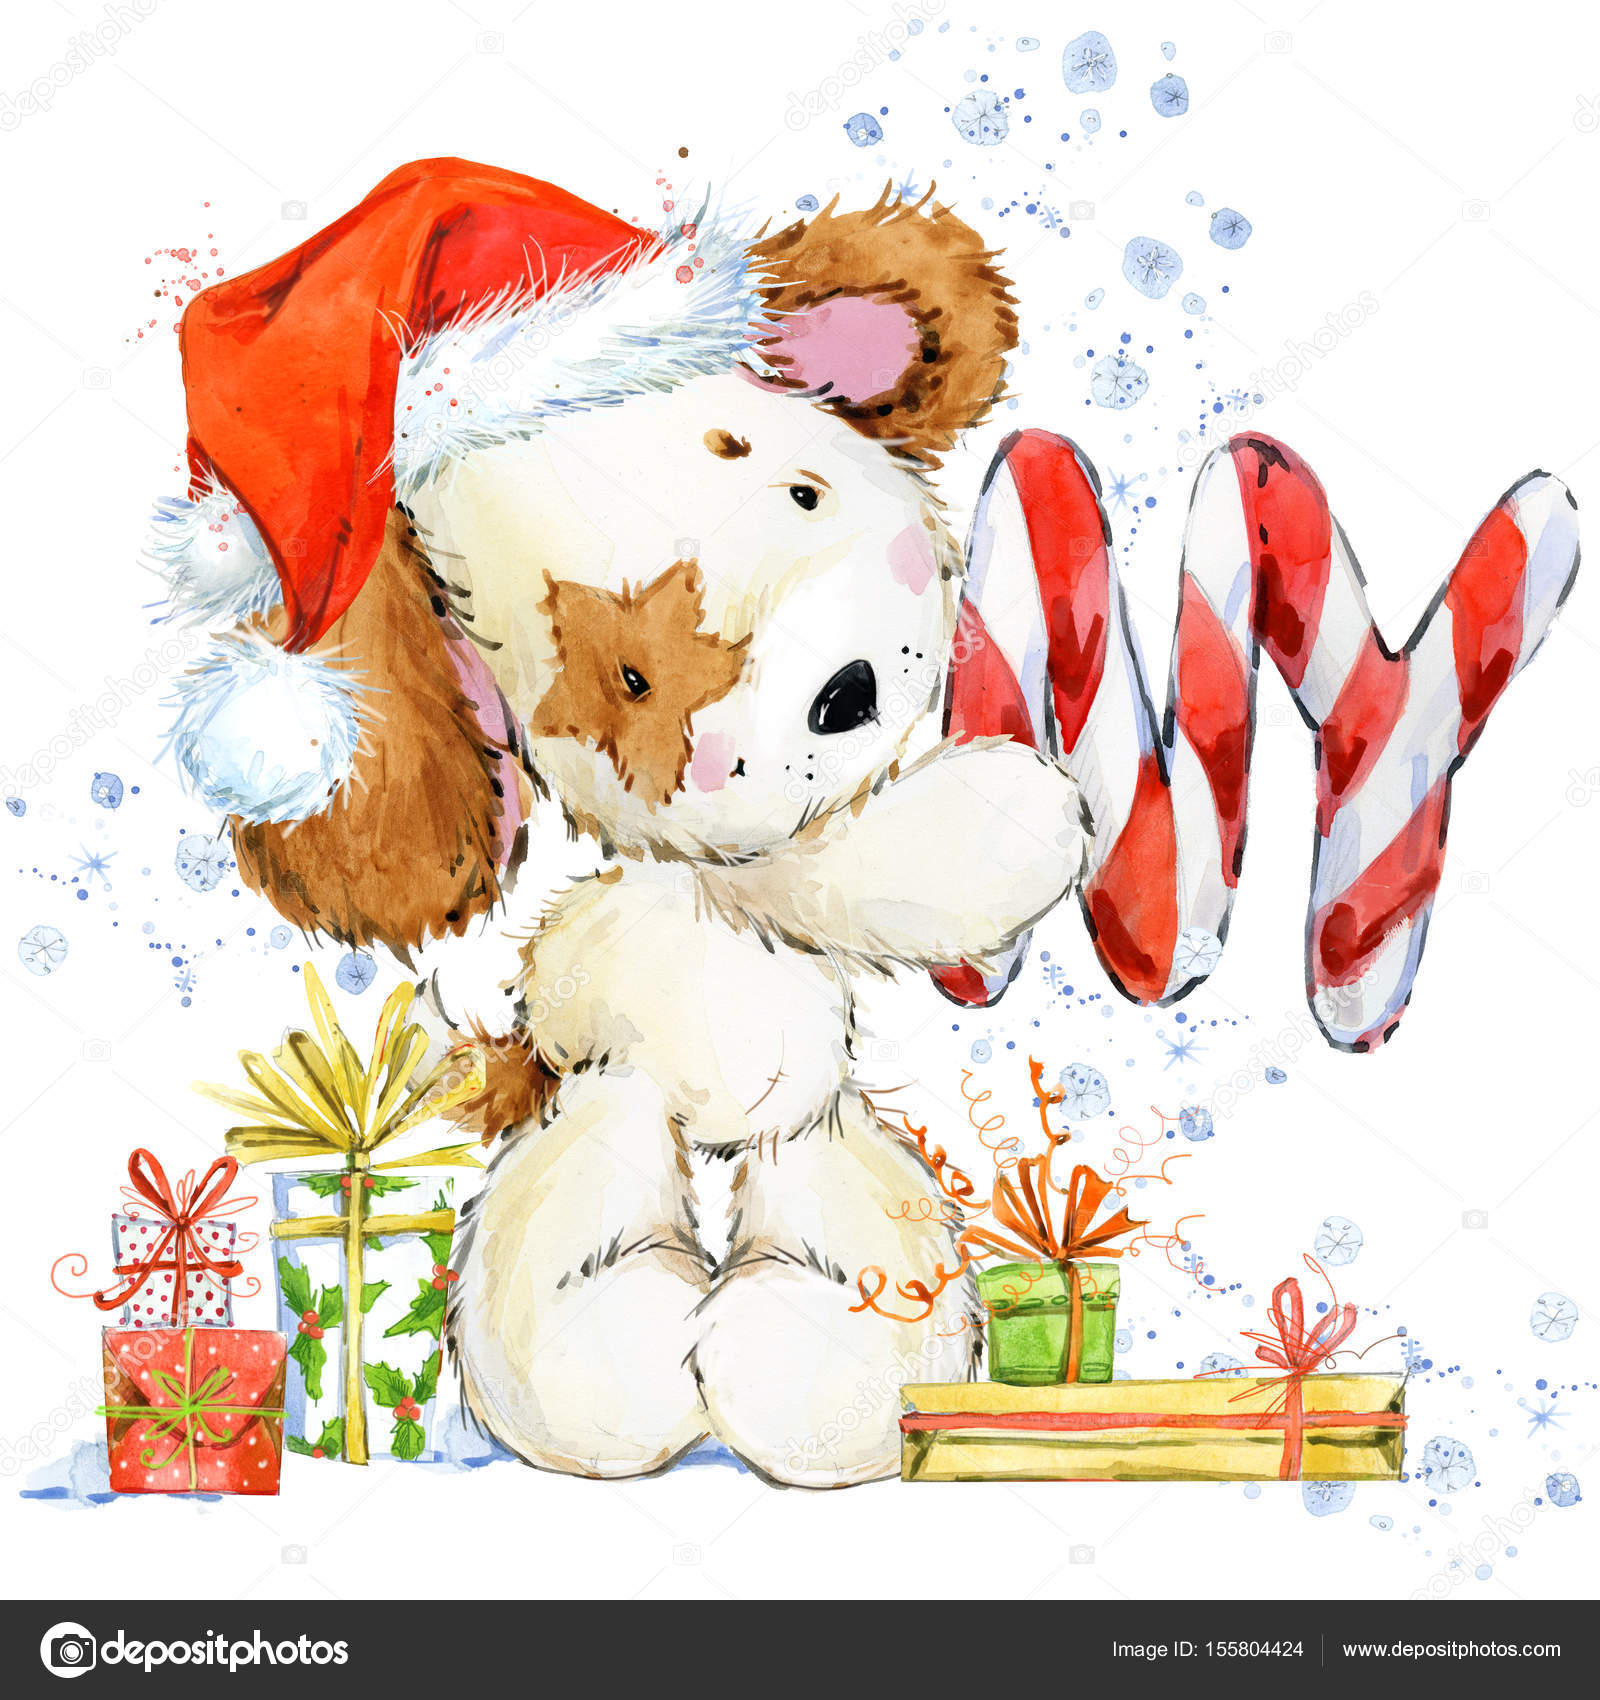 Cute Cartoon Puppy Watercolor Illustration Background For Christmas